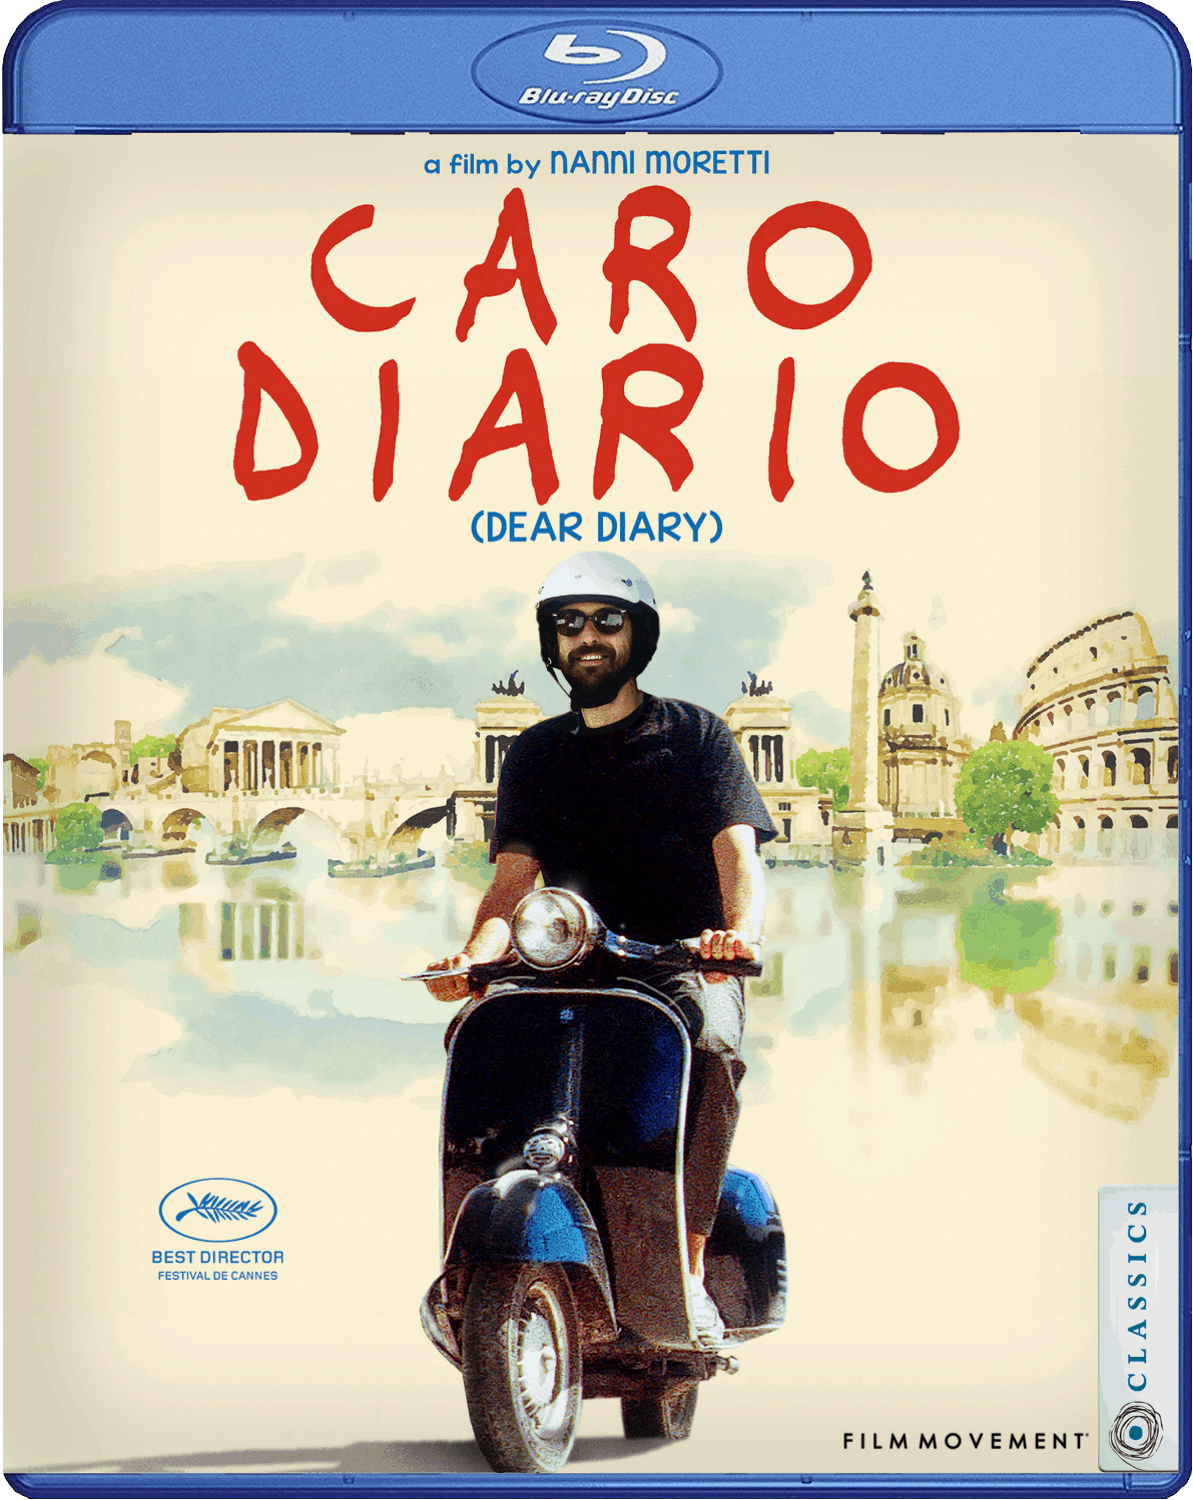 Troy reviews the DVDs and Blu-rays arriving September 8th 2